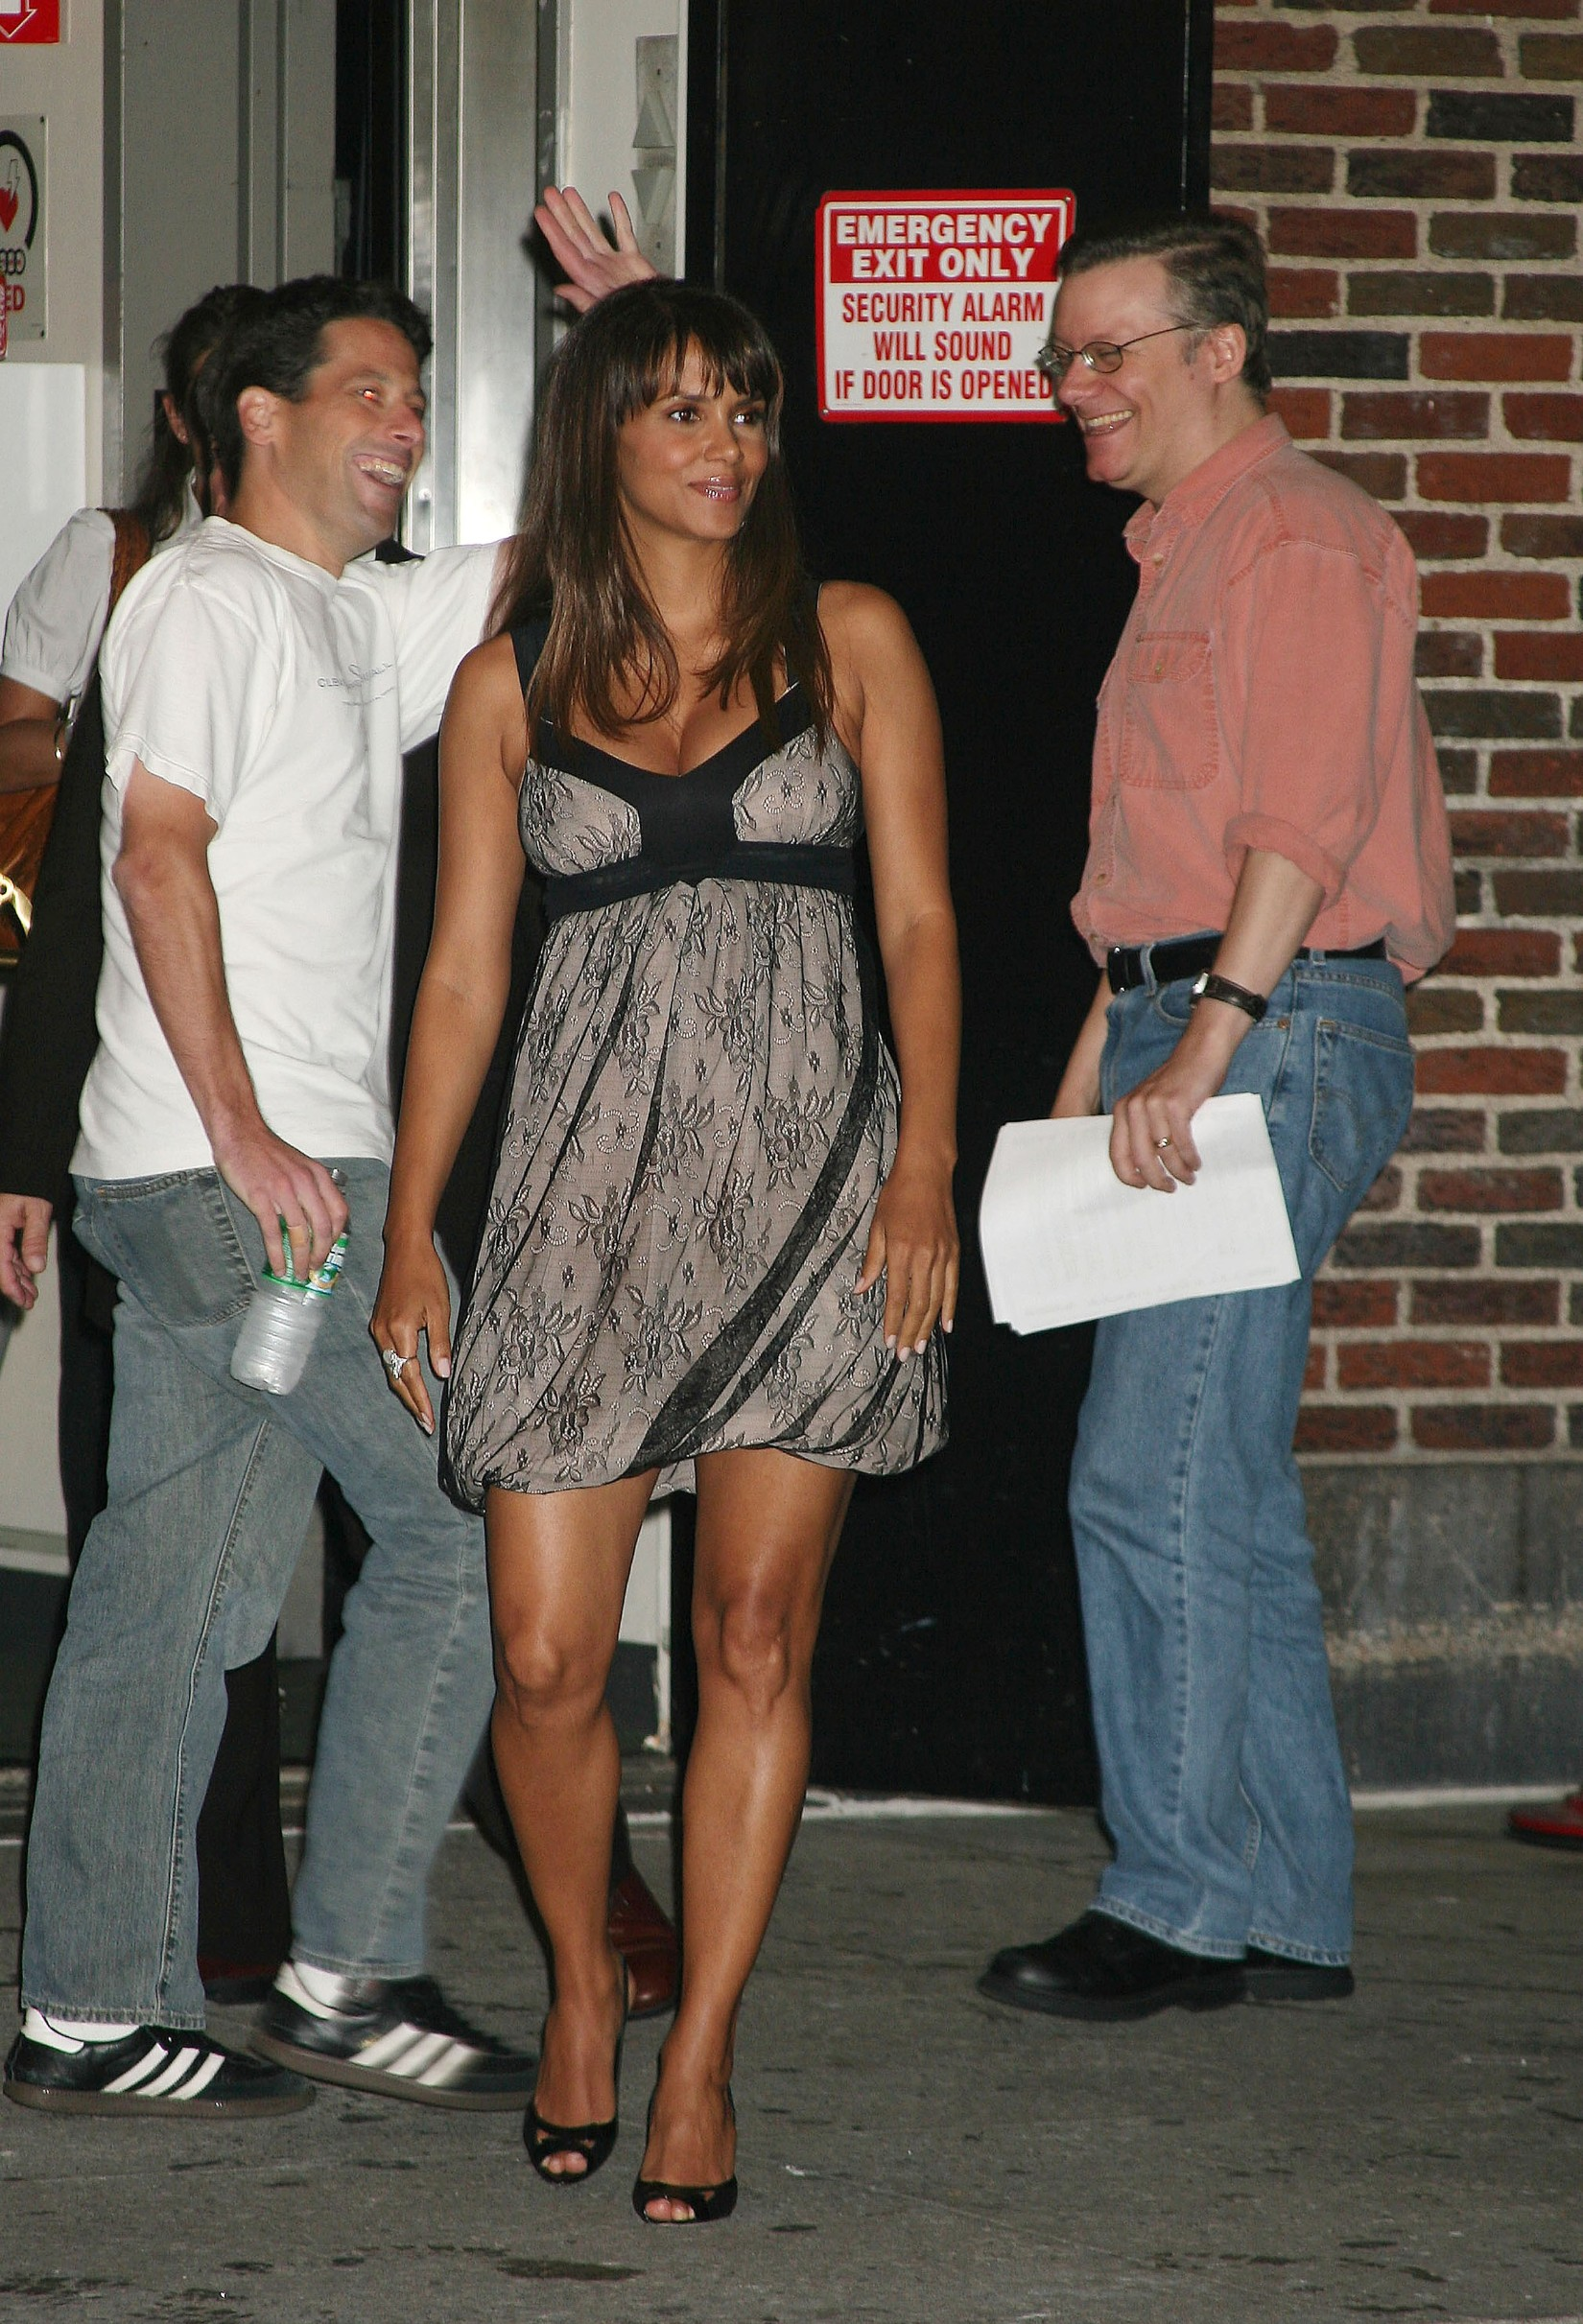 18018, NEW YORK, NEW YORK - Monday October 8 2007. A blossoming Halle Berry outside the Ed Sullivan Theater in New York City where she recorded an episode of